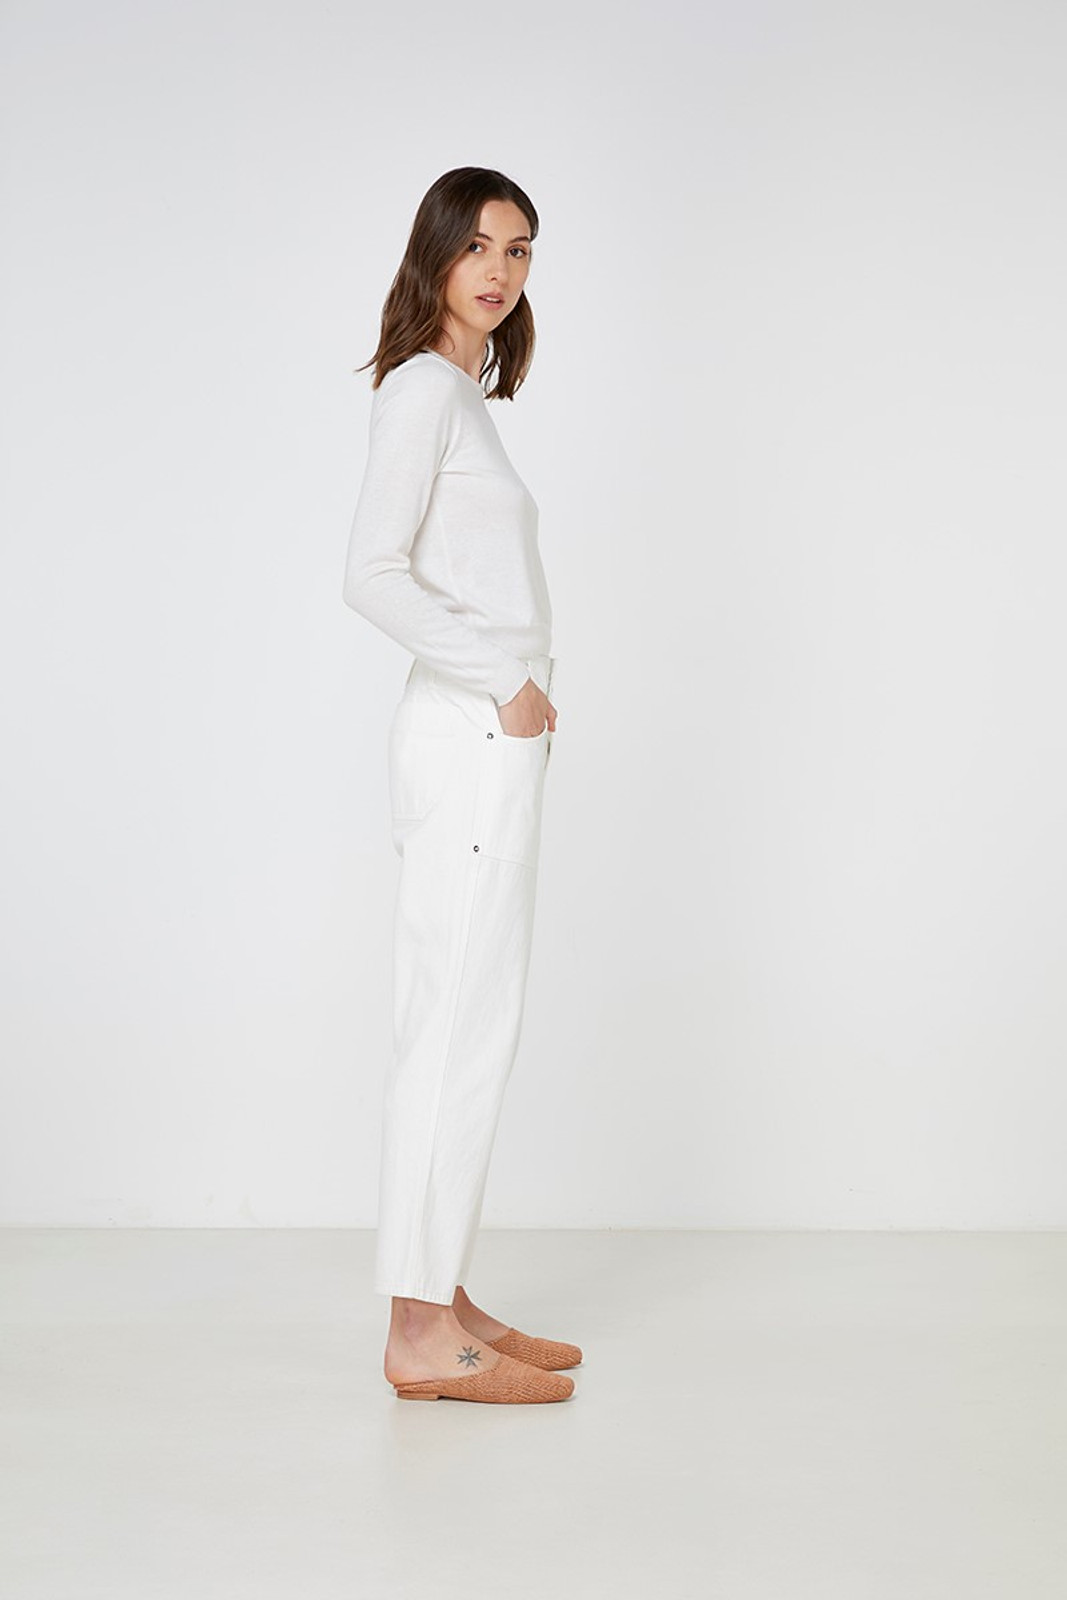 Elka Collective Gale Knit White  7